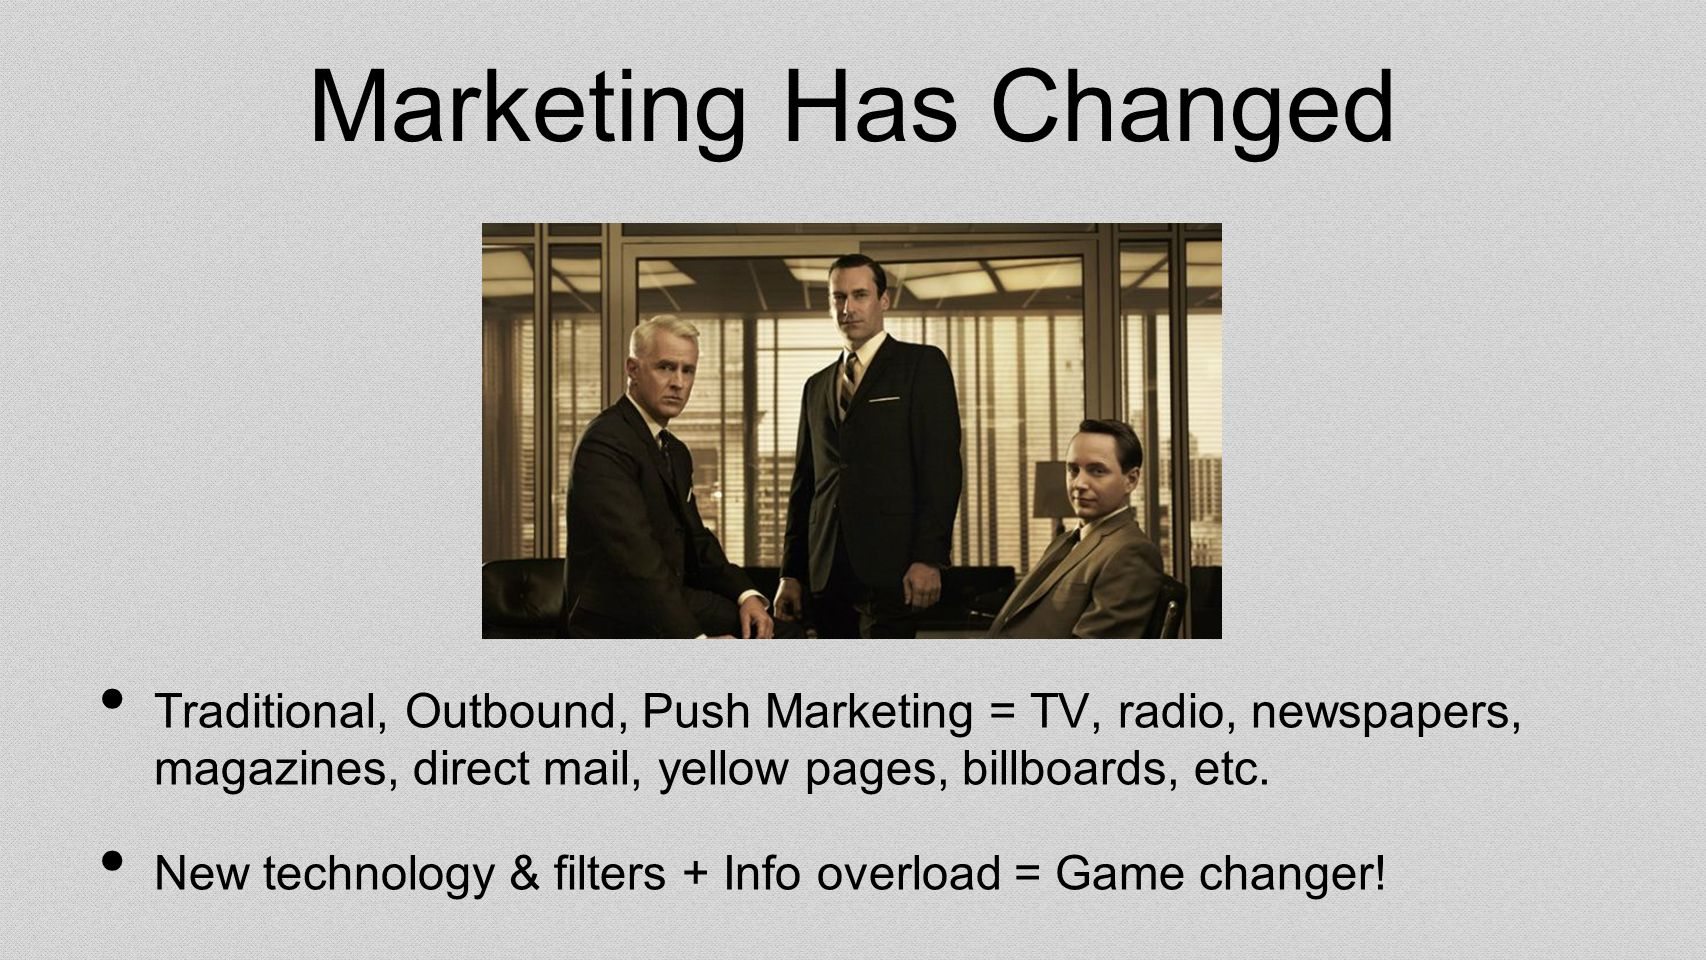 Marketing Has Changed Traditional, Outbound, Push Marketing = TV, radio, newspapers, magazines, direct mail, yellow pages, billboards, etc.